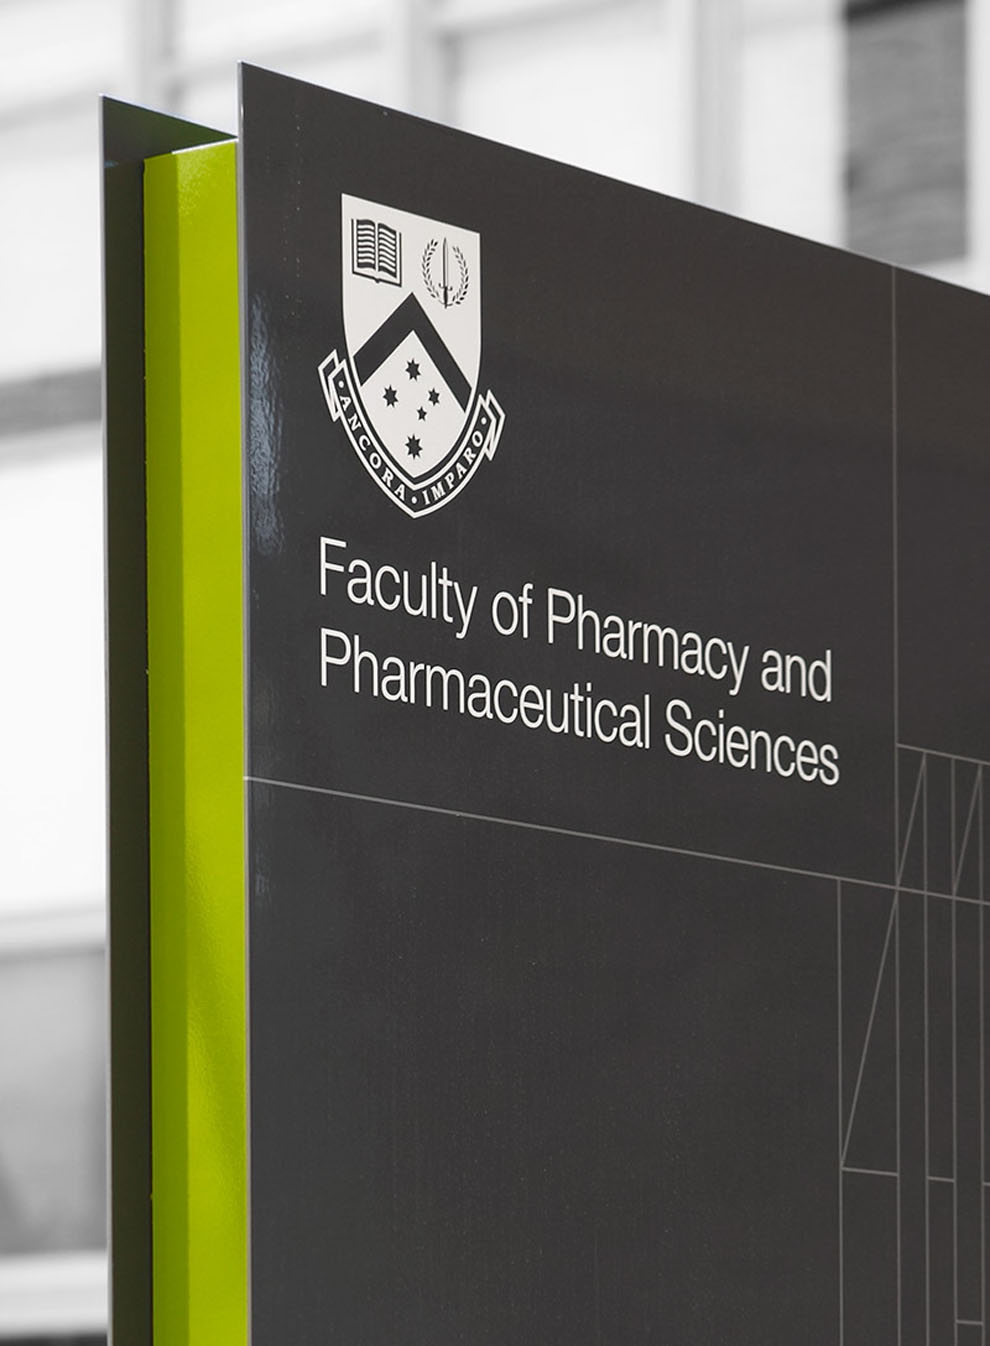 Monash Pharma Signage Program / Hofstede